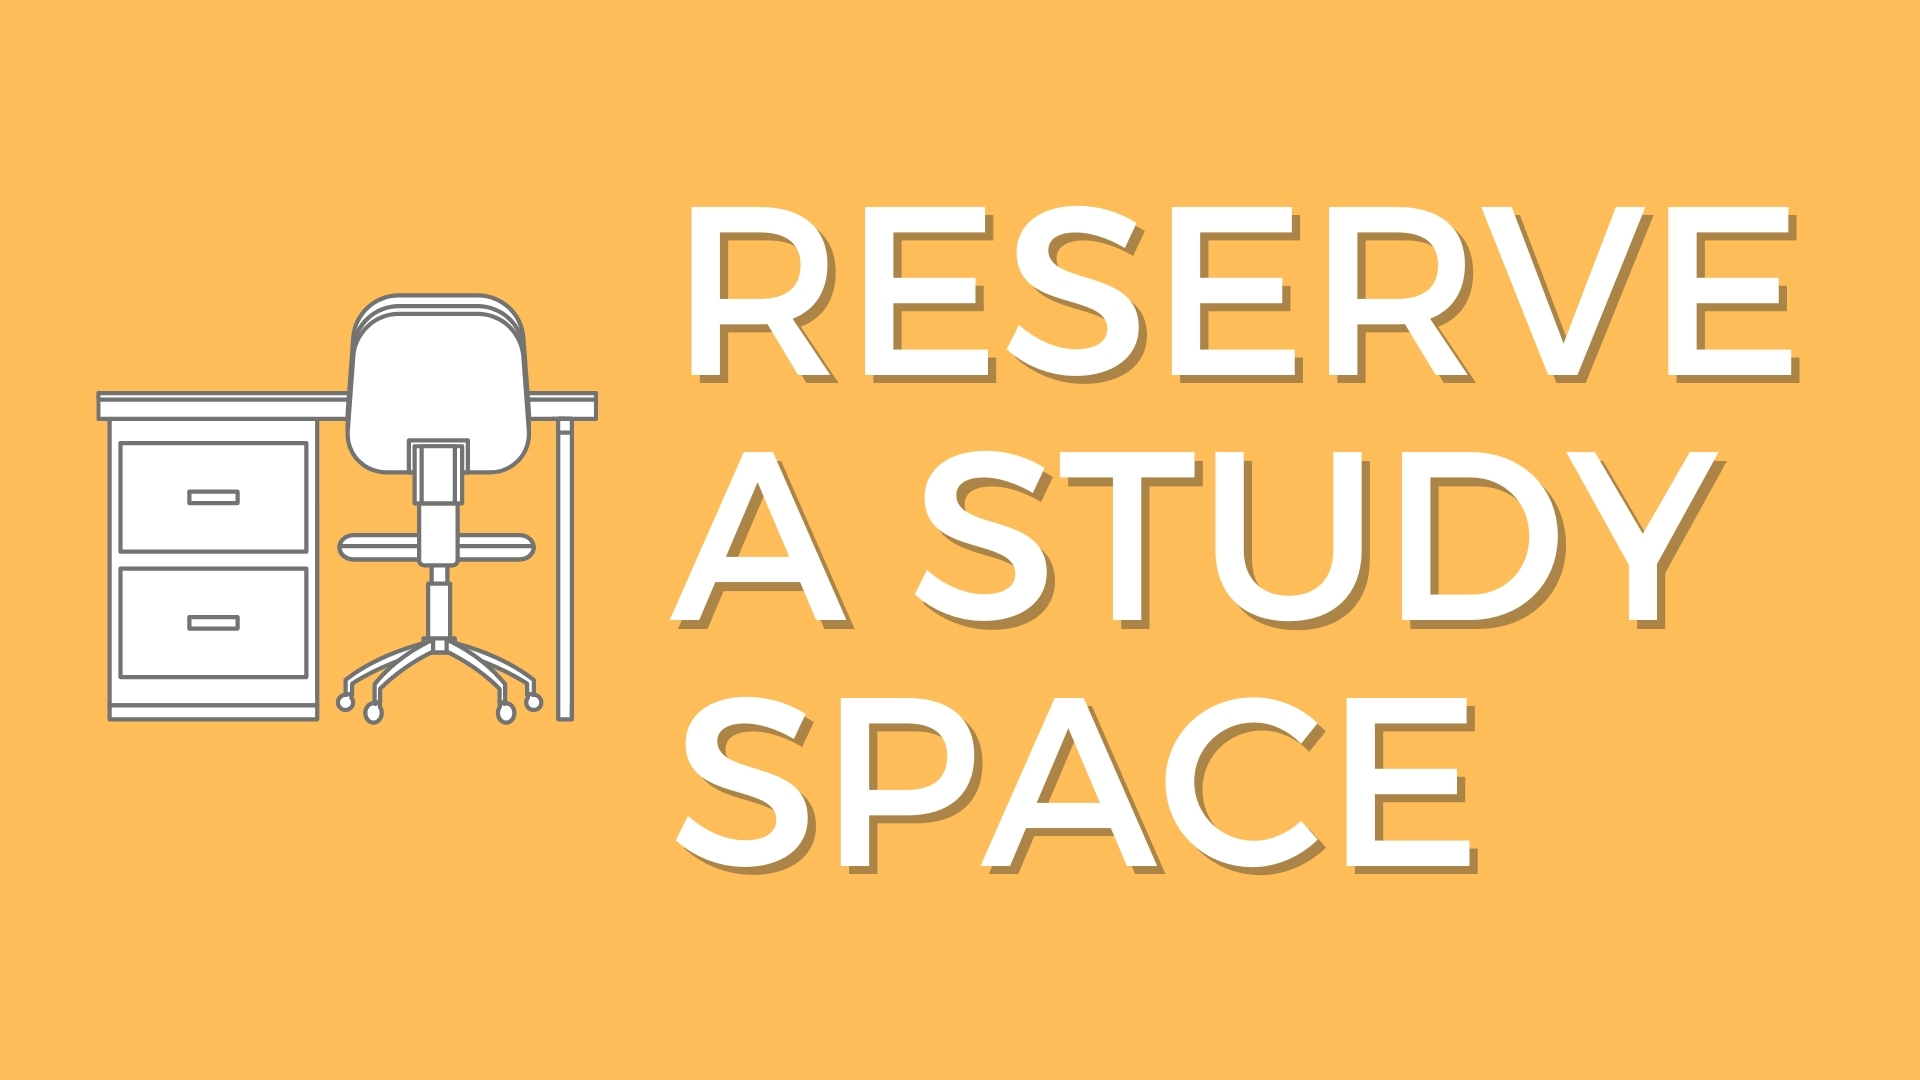 Reserve A Study Space